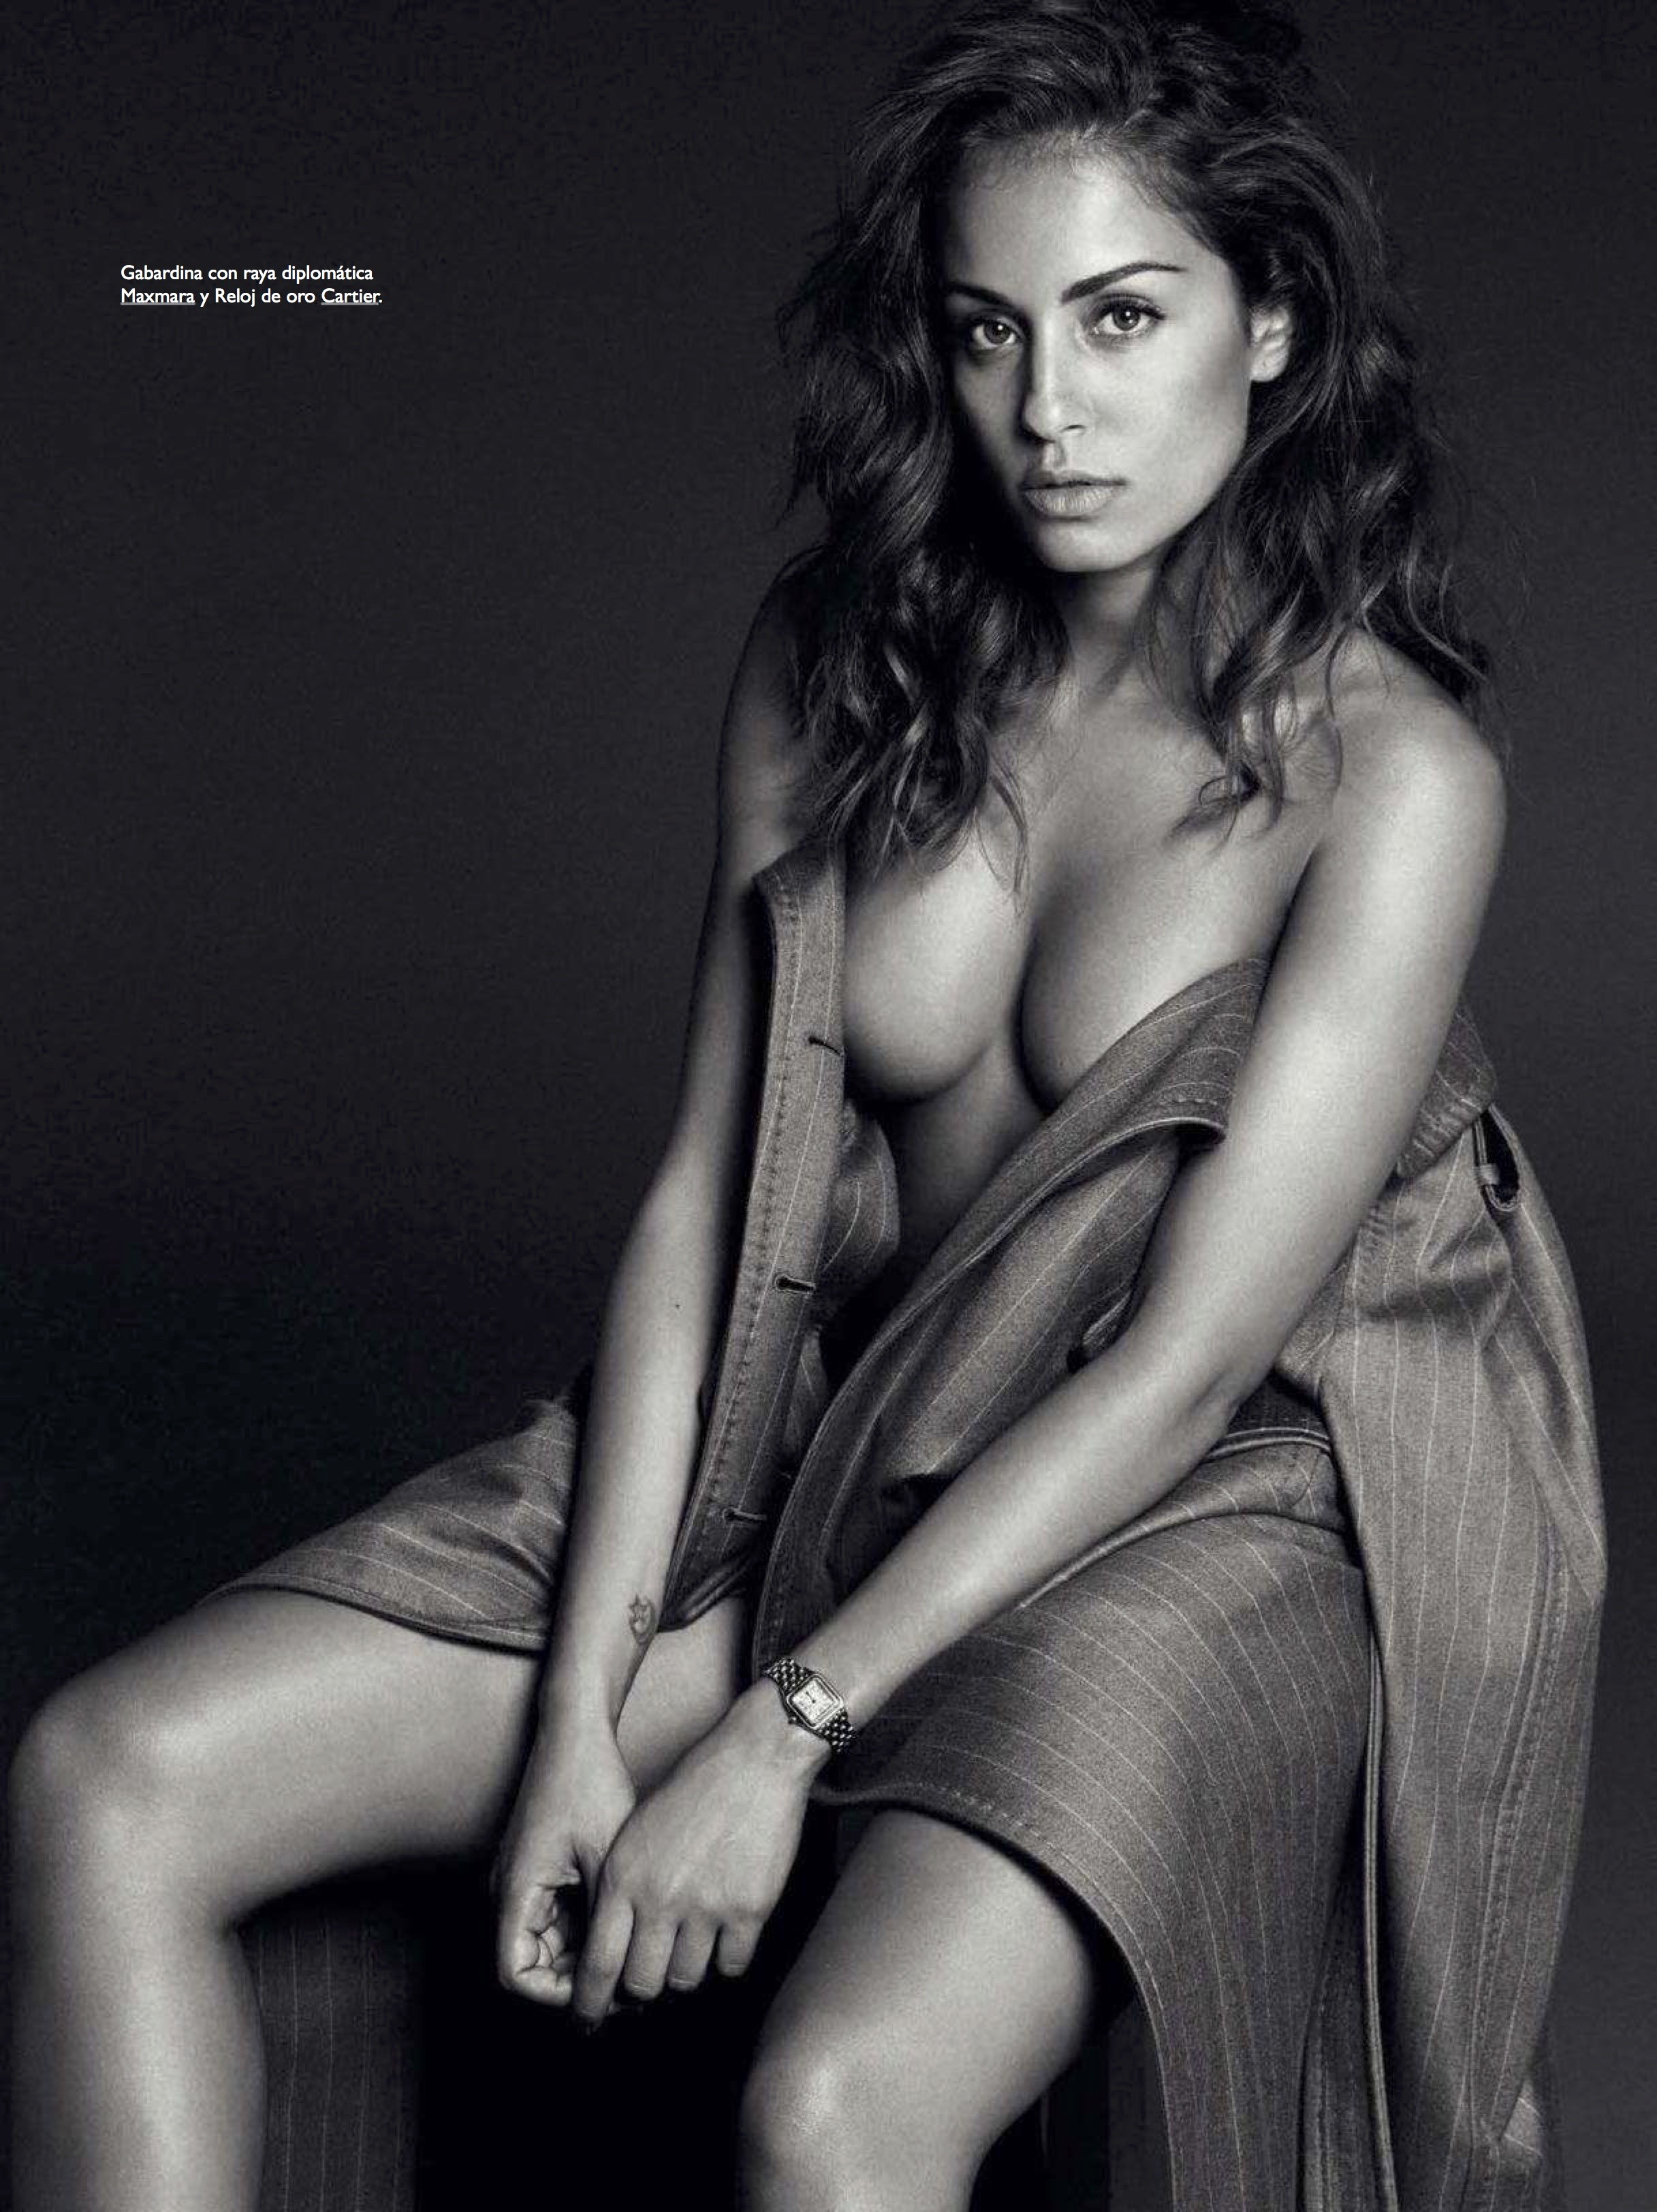 Hiba Abouk fotos porno